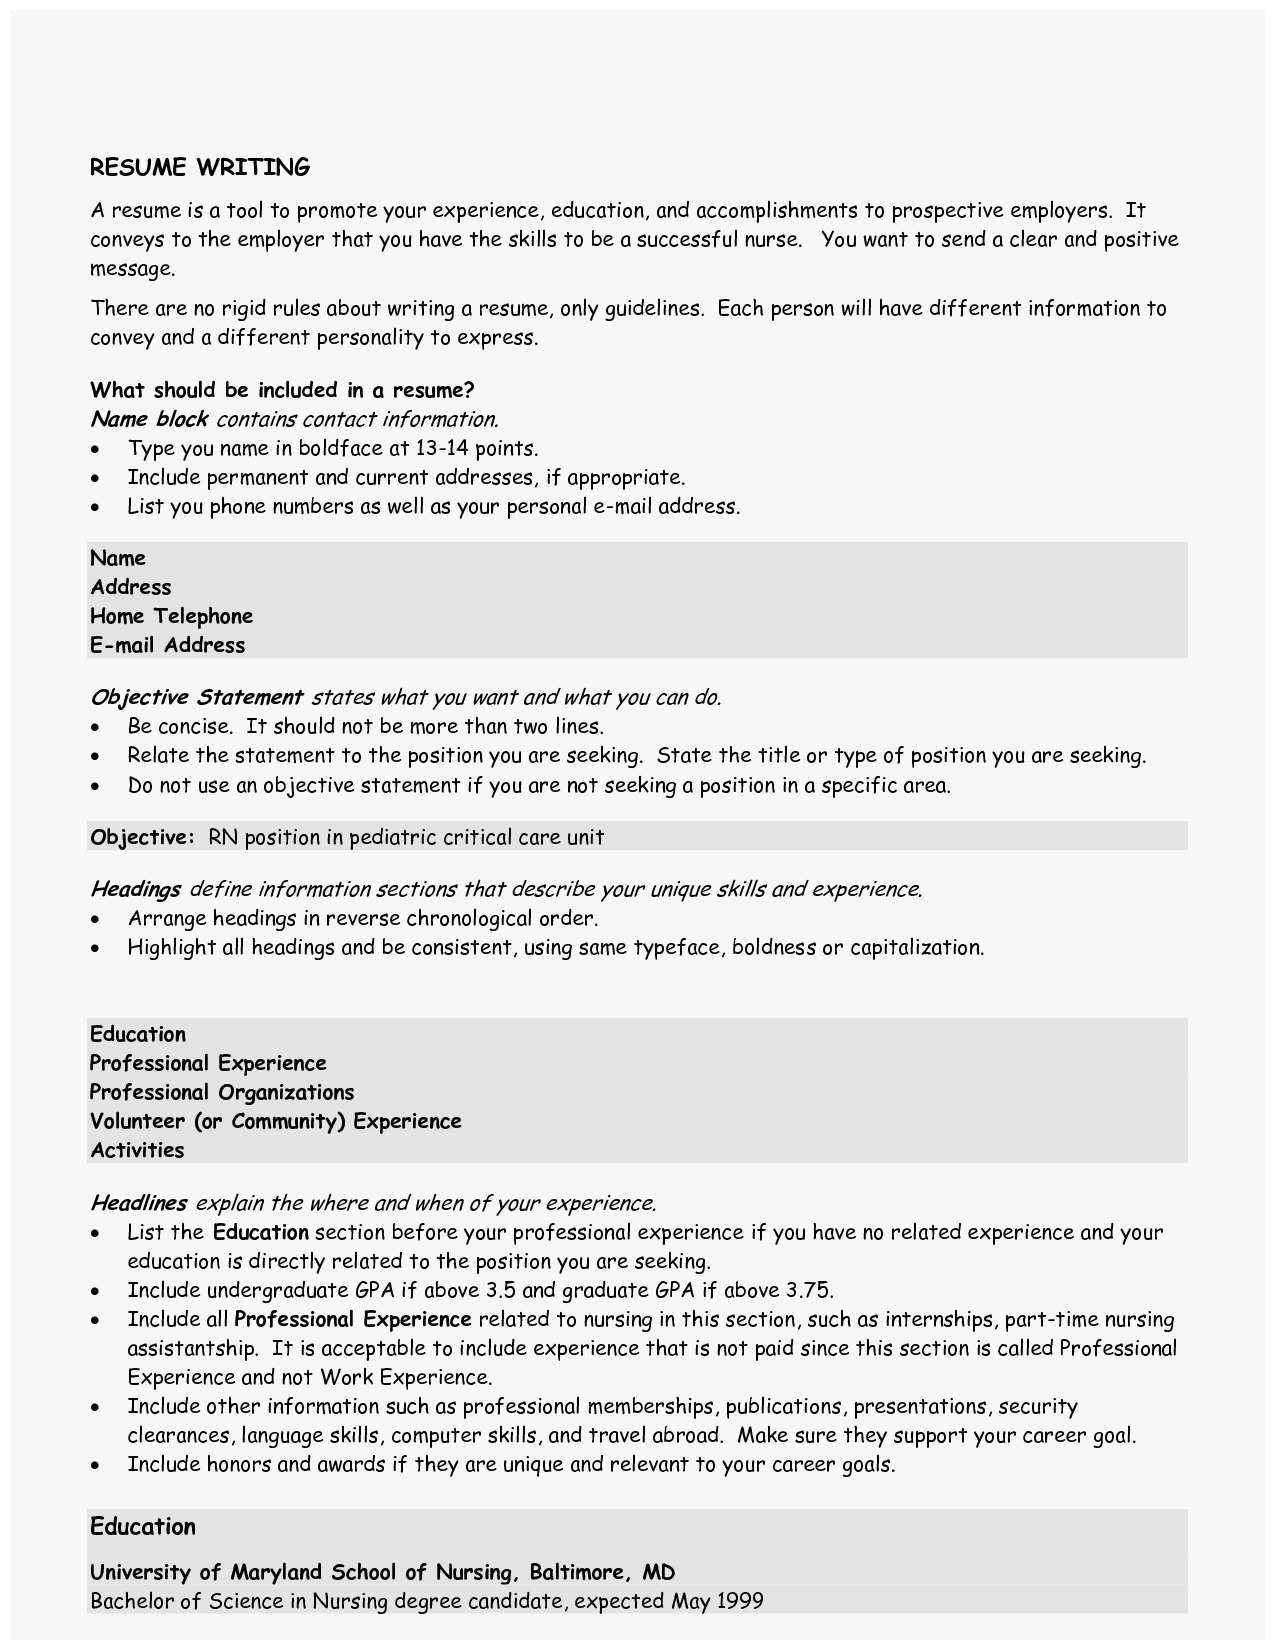 Good Objective For Resume Good Objective Statement For Resume Fresh Resume Objective Resume Cv Of Good Objective Statement For Resume good objective for resume wikiresume.com